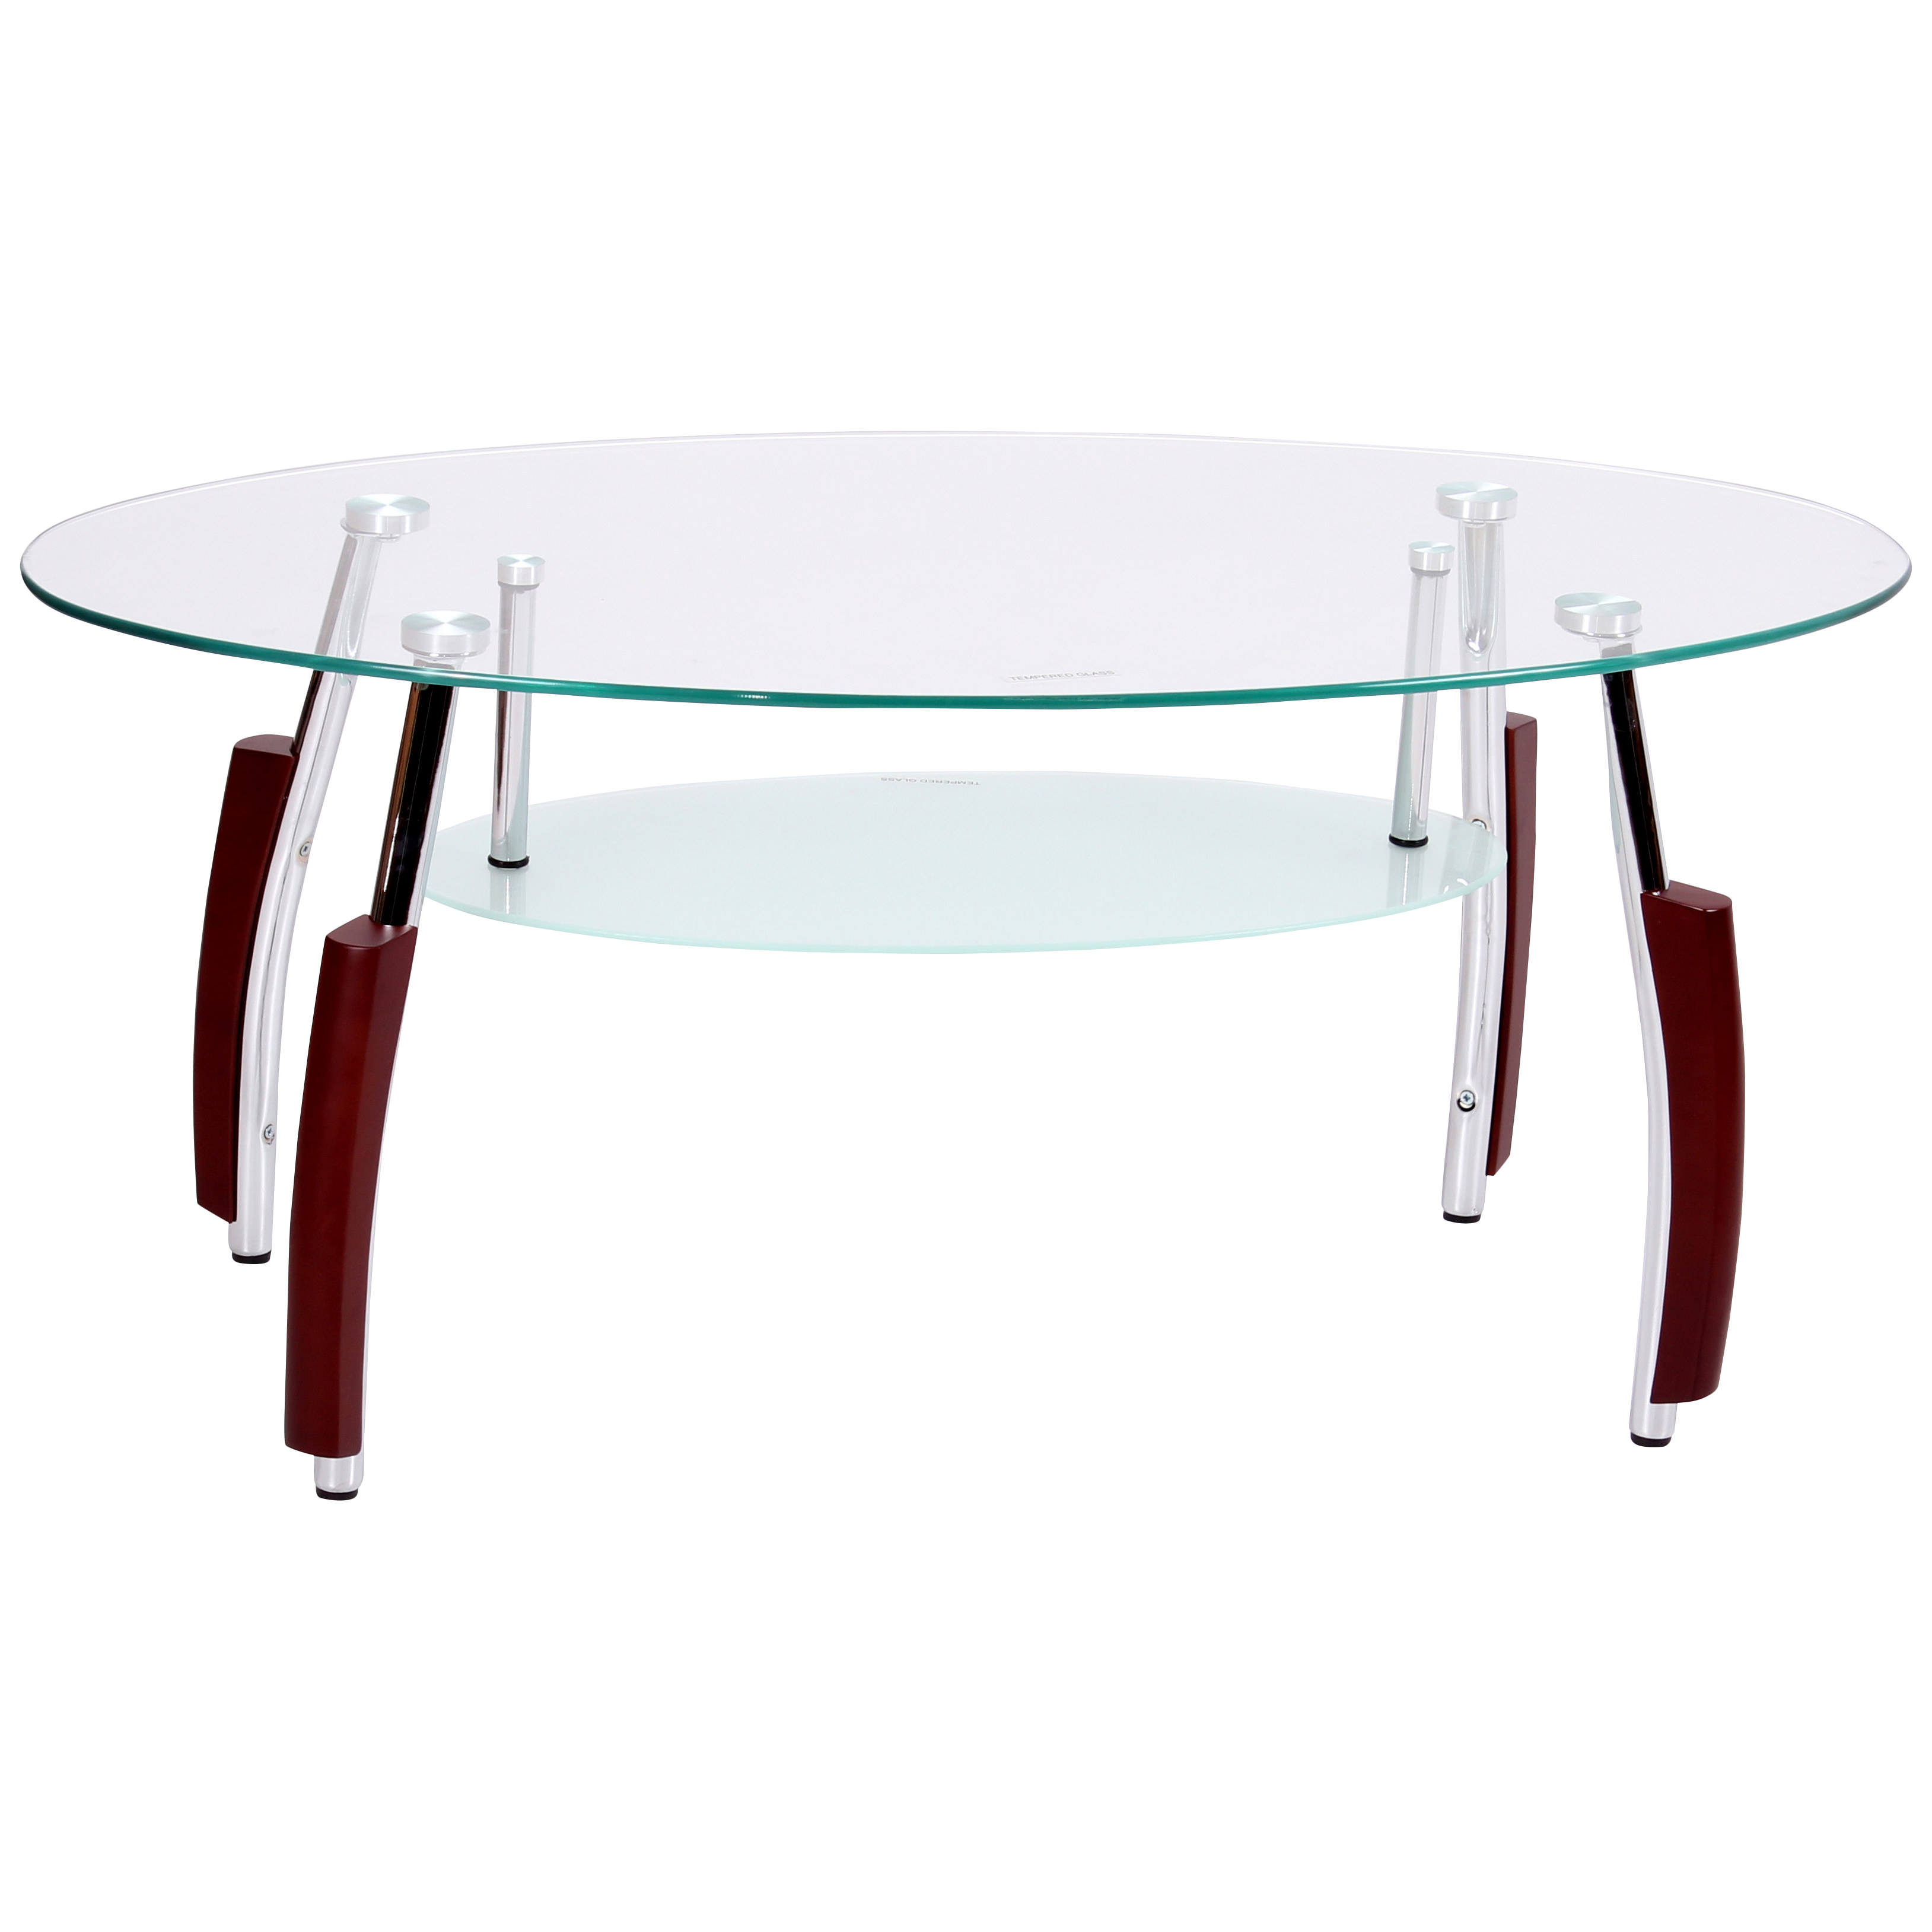 Details About Mahogany Chrome Metal Finish Clear Glass Oval Coffee Table With Shelf